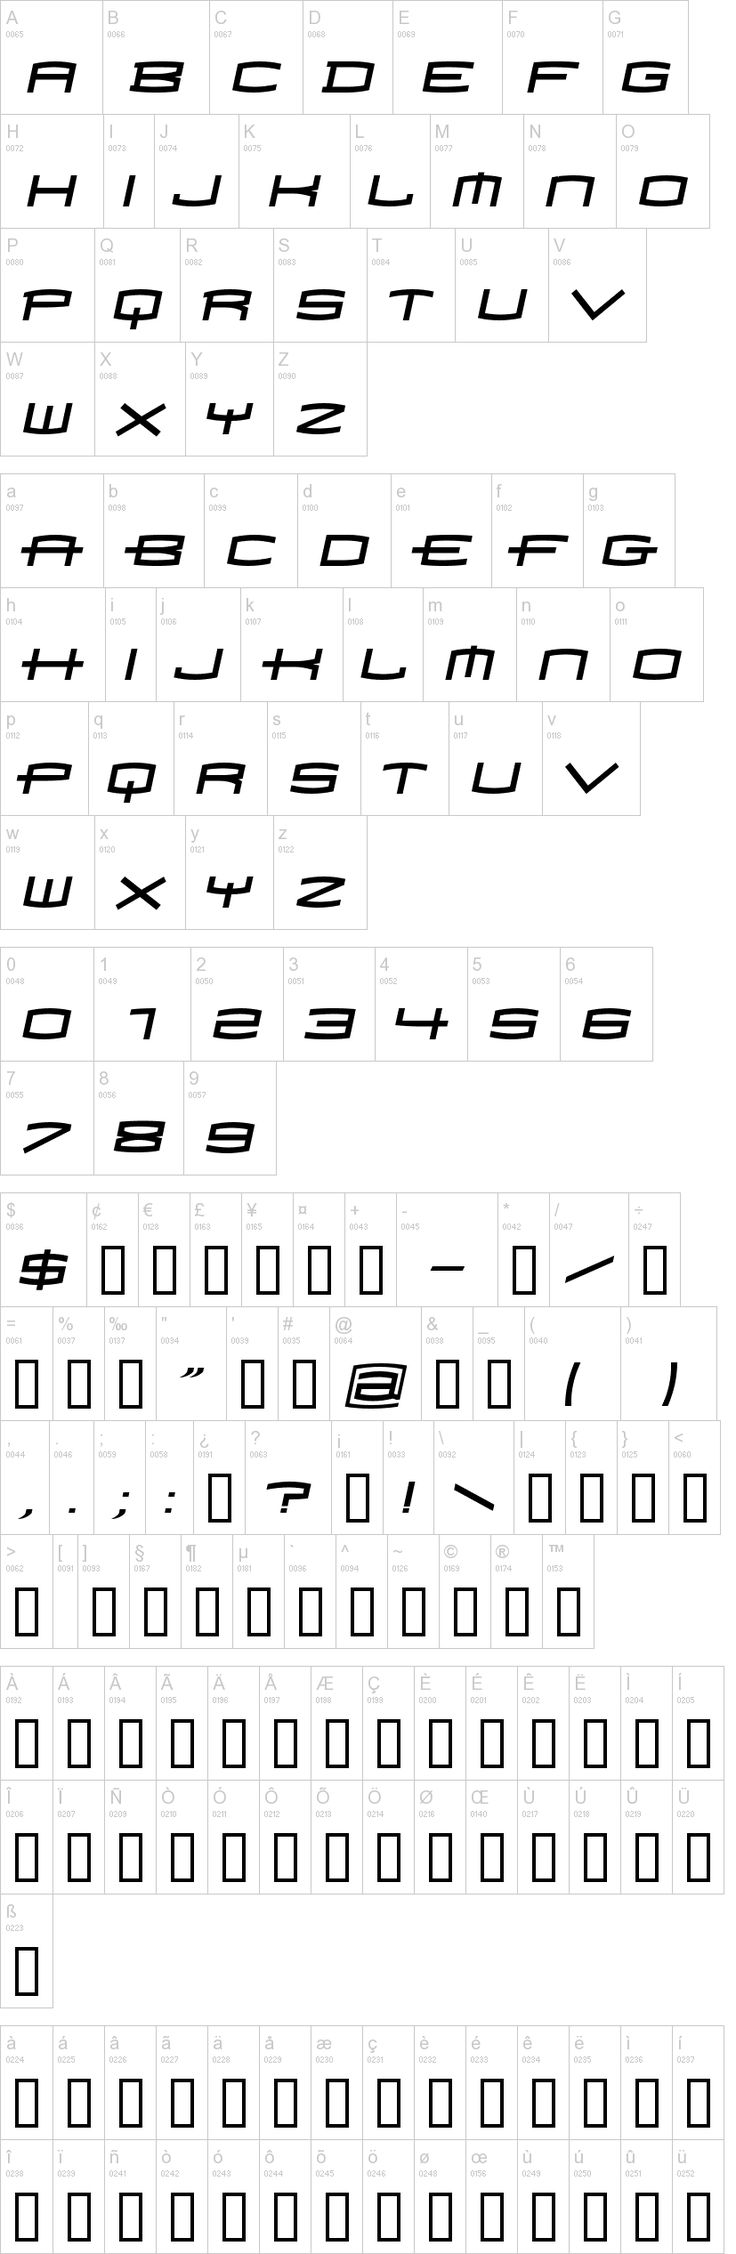 @Keri Whaitiri Stubbs THIS is the webpage where you can download the spider-man font, and, i prefer the second one :-)